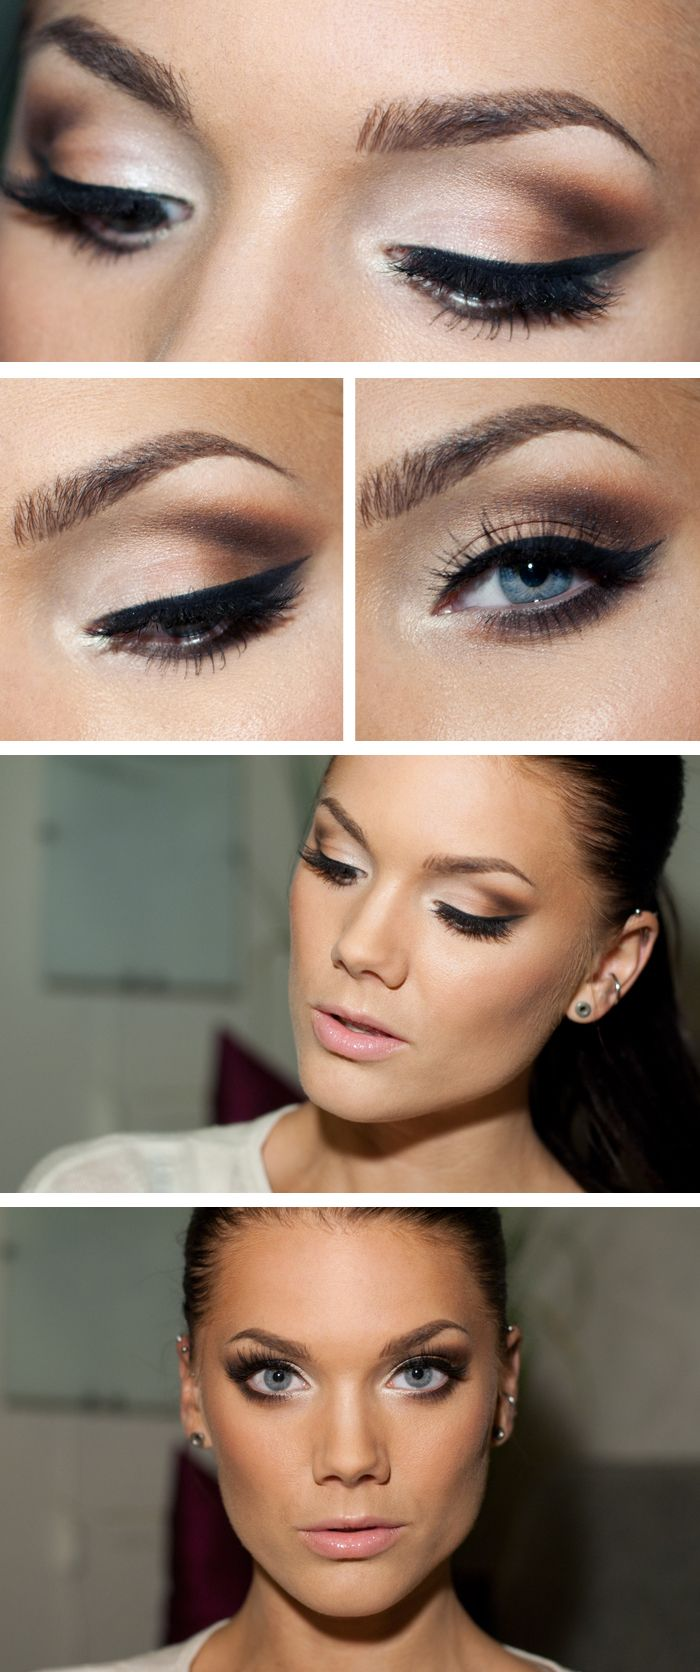 "Today's Look ""After 13 Hours"" -Linda Hallberg (this beautiful nude smokey eye was photographed 13 hours later!!! ) 03/28/13"